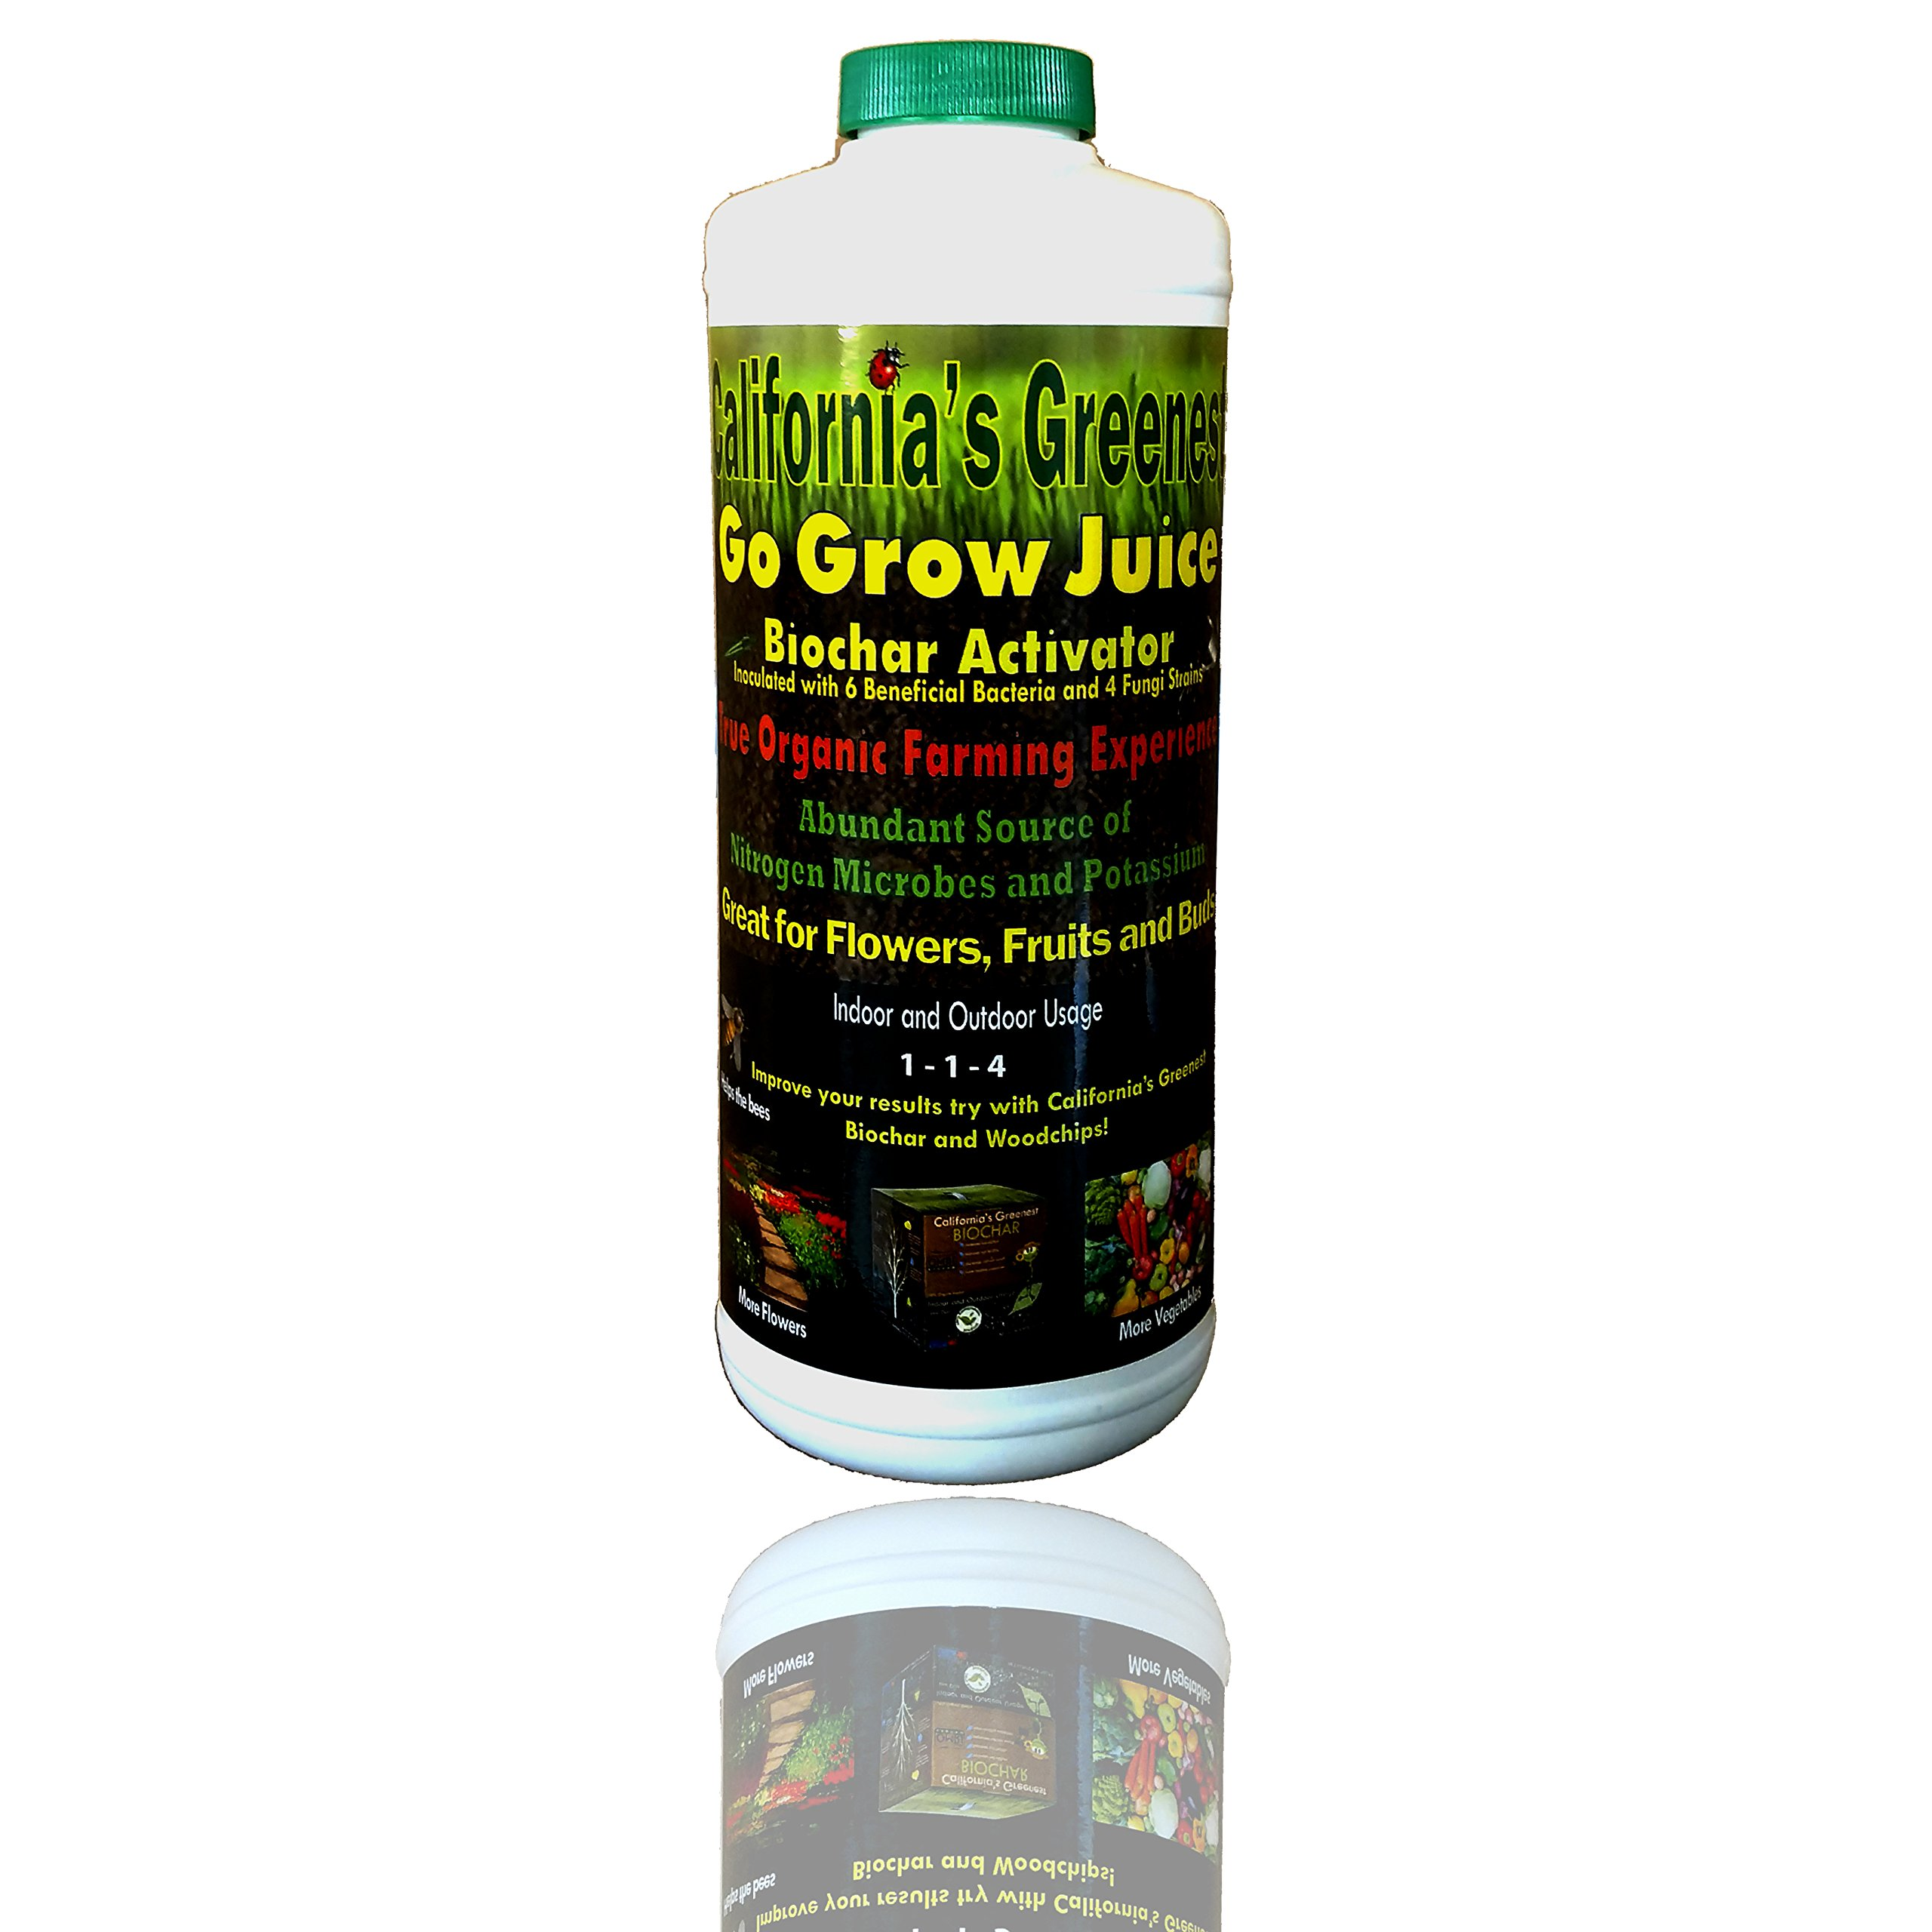 California's Greenest Go Grow Juice [BIOCHAR ACTIVATOR] - All Natural & Organic Botanical Plant Extract - Flowers, Leaves, Bark, Grass & Kelp/Seaweed Extract - All in One - Concentrated (1 QT)